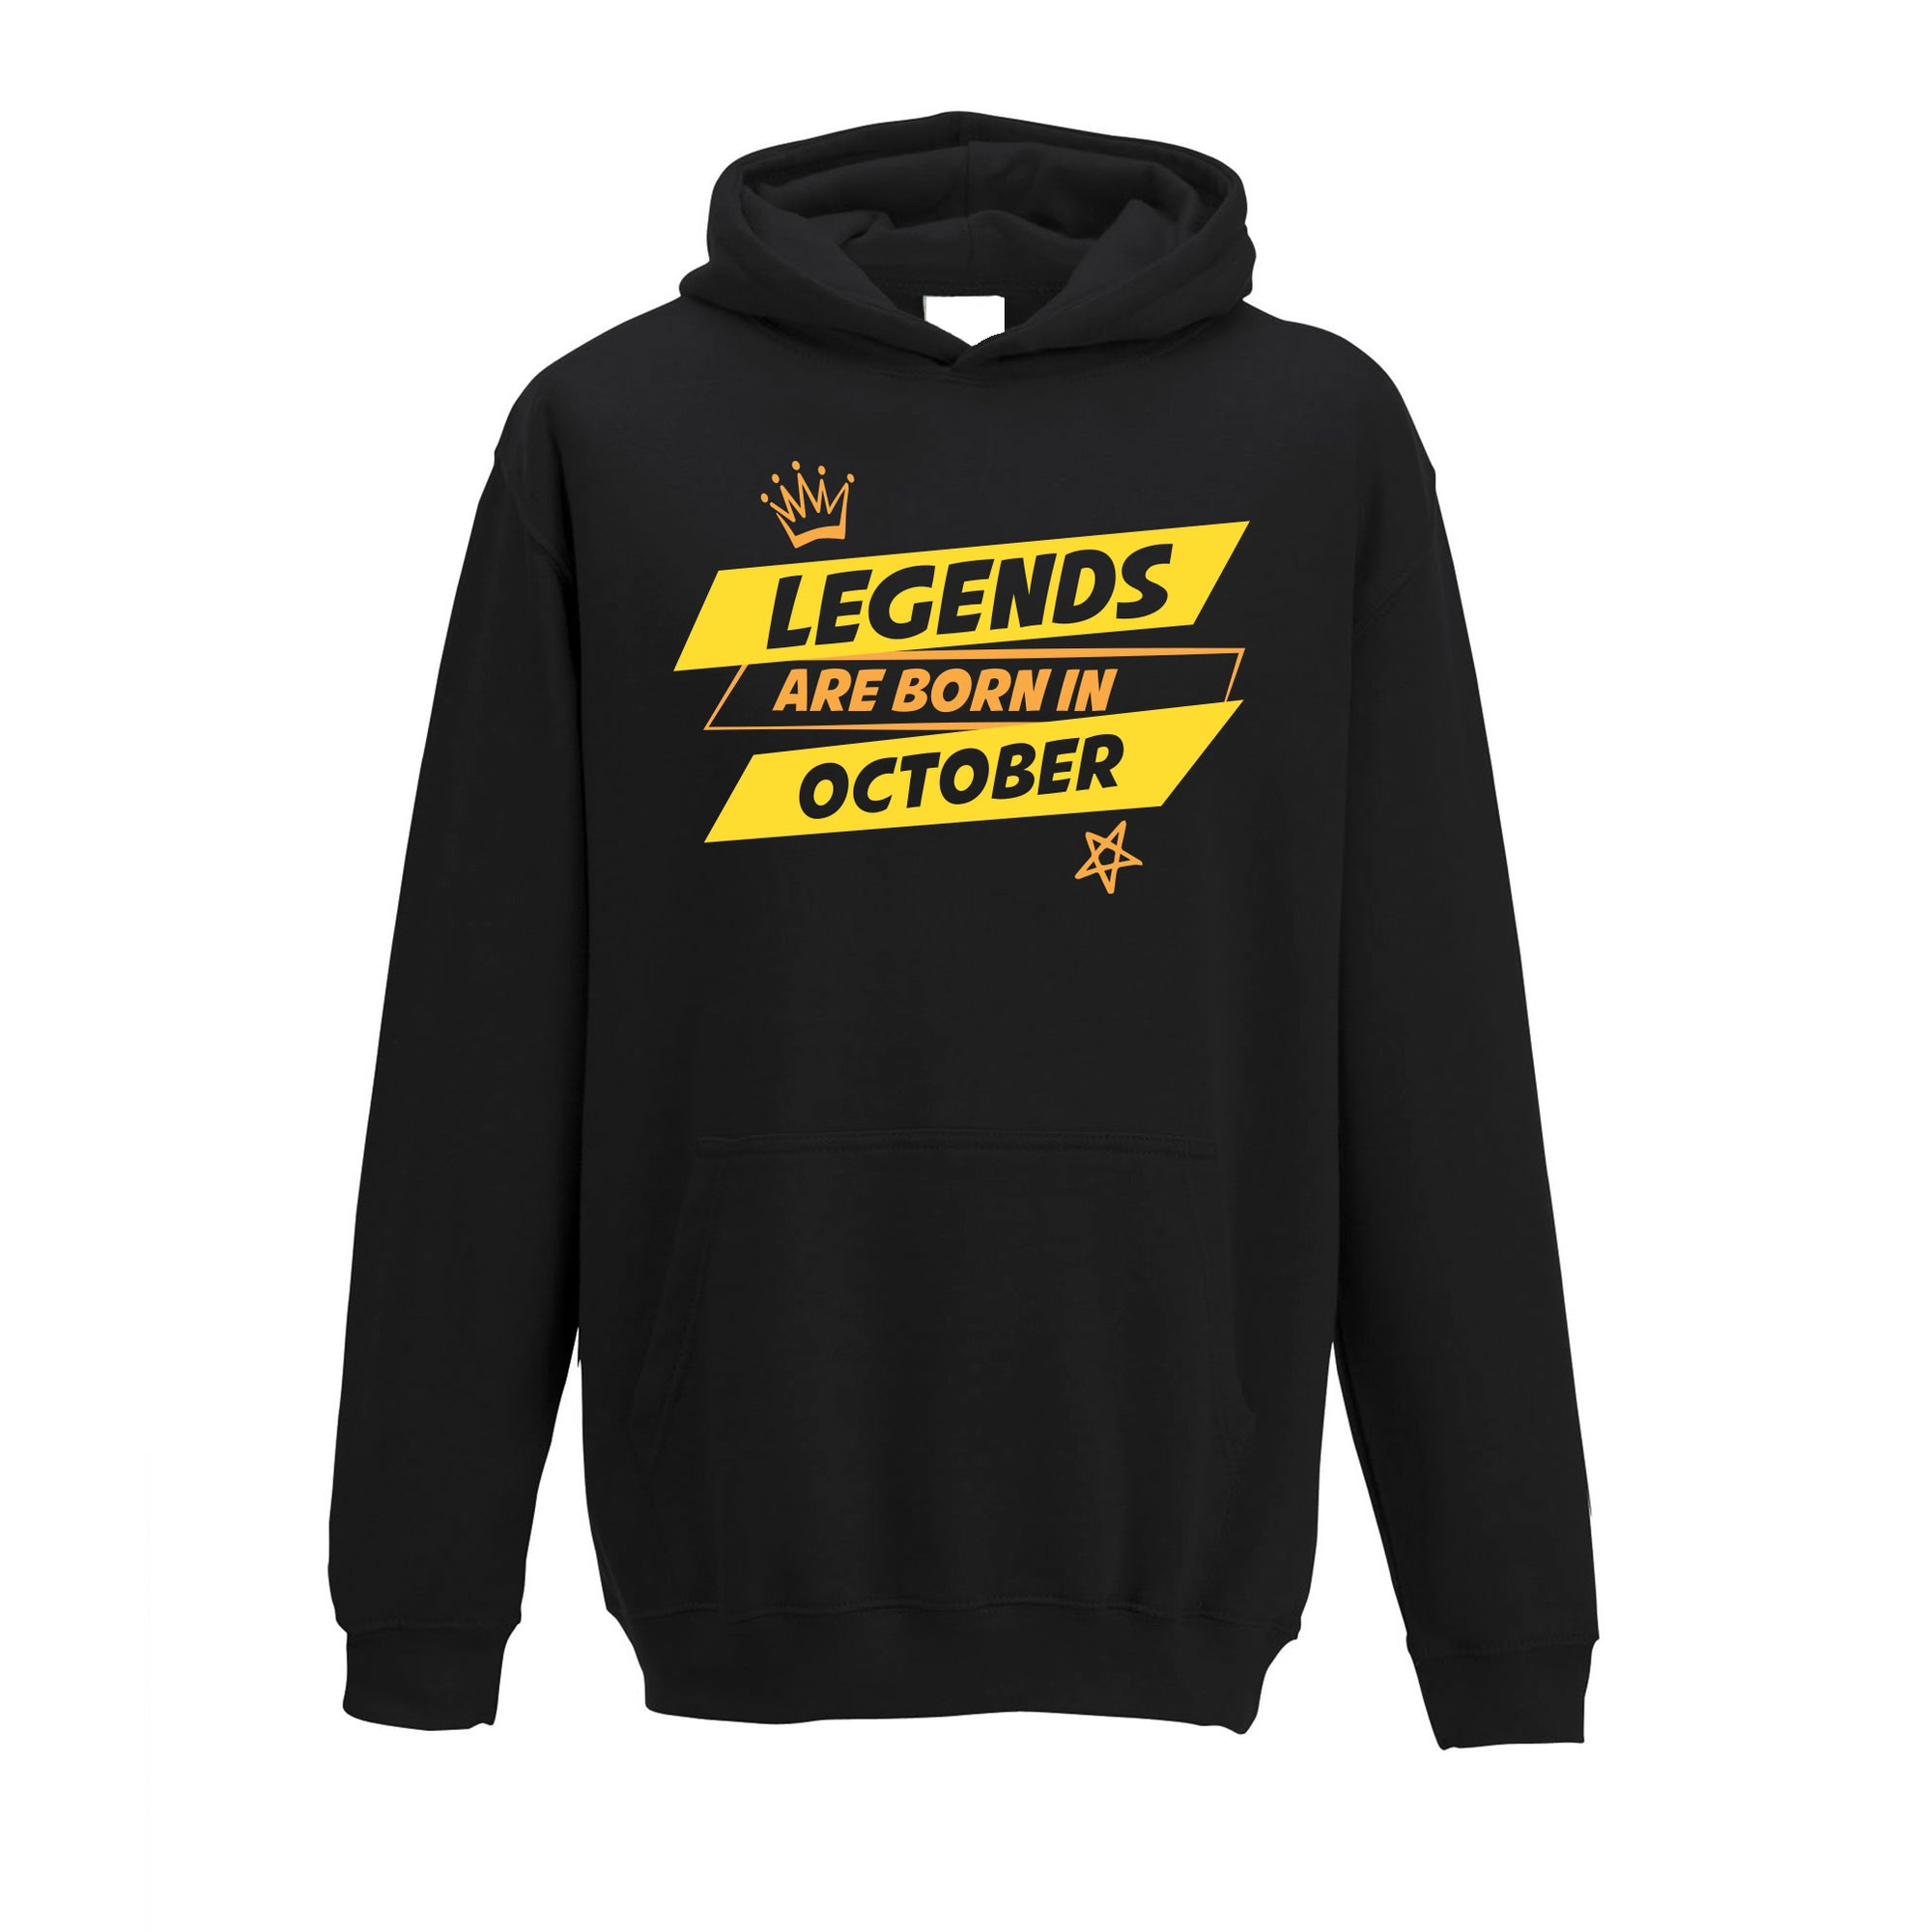 Birthday Kids Hoodie Legends Are Born In October kids Childs